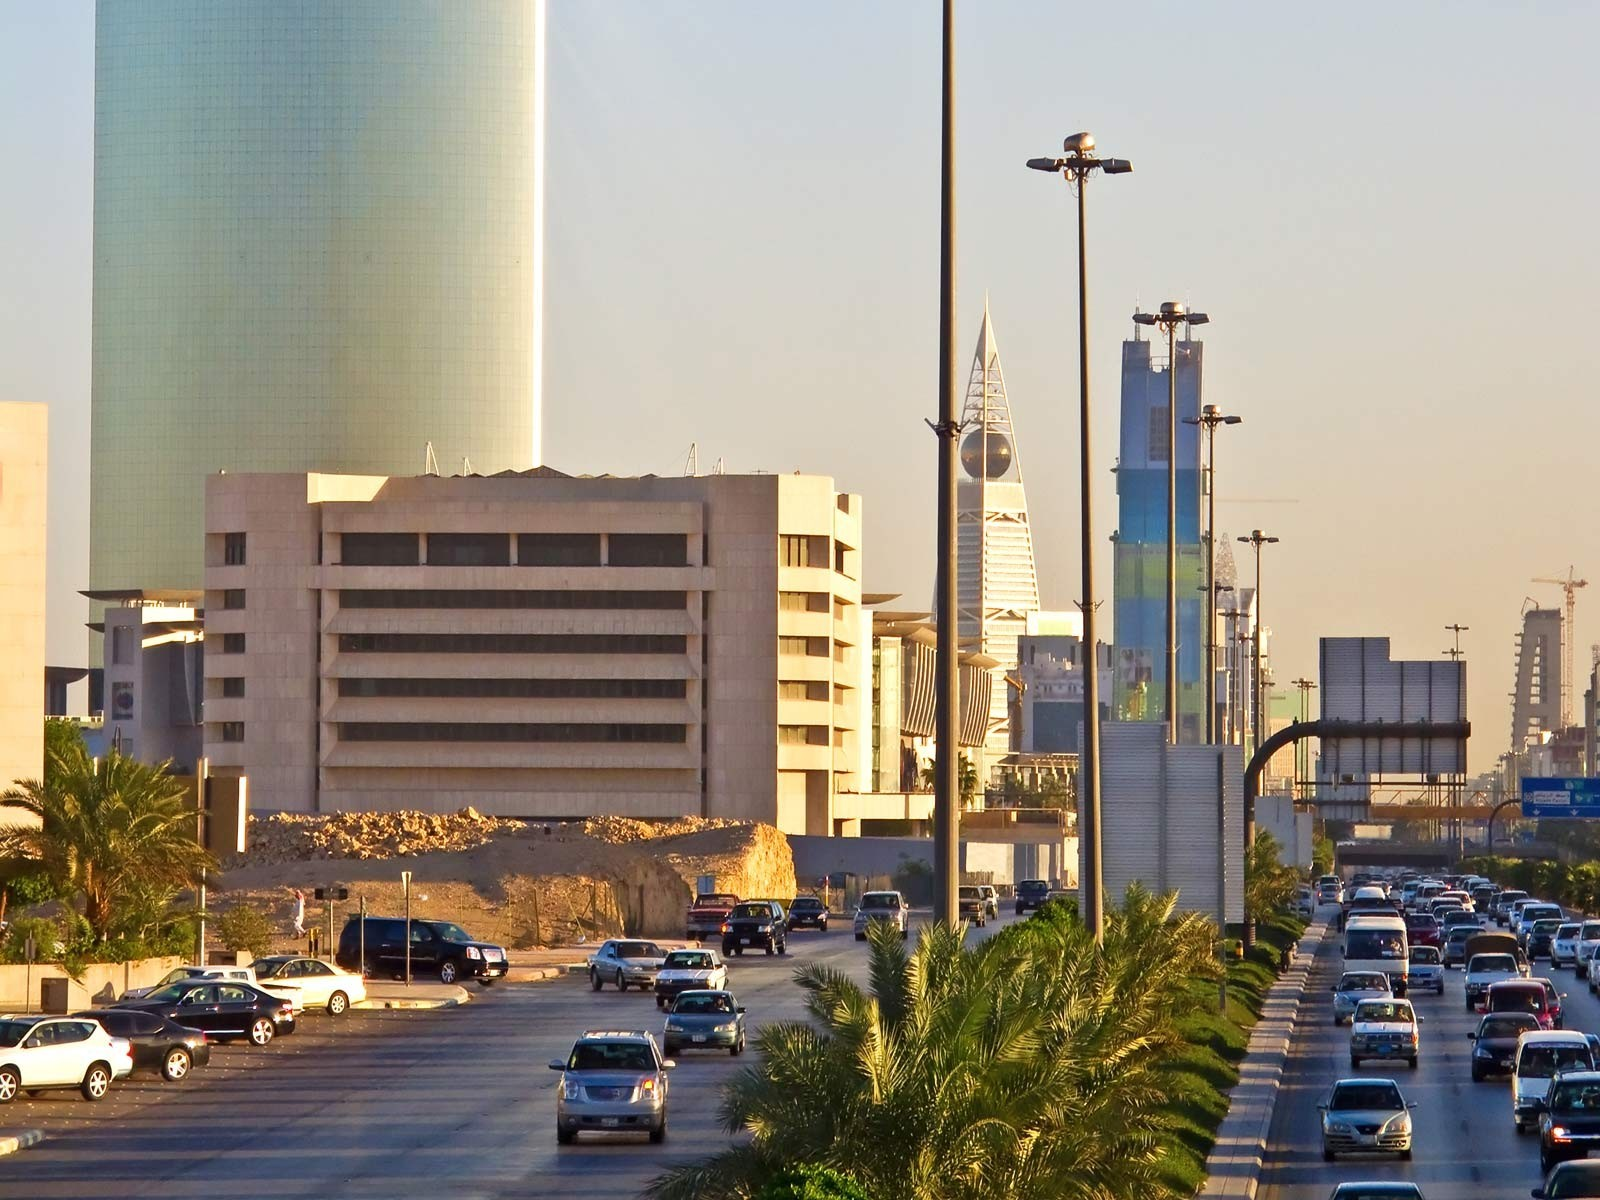 cityscapes Middle East saudi HD Wallpaper